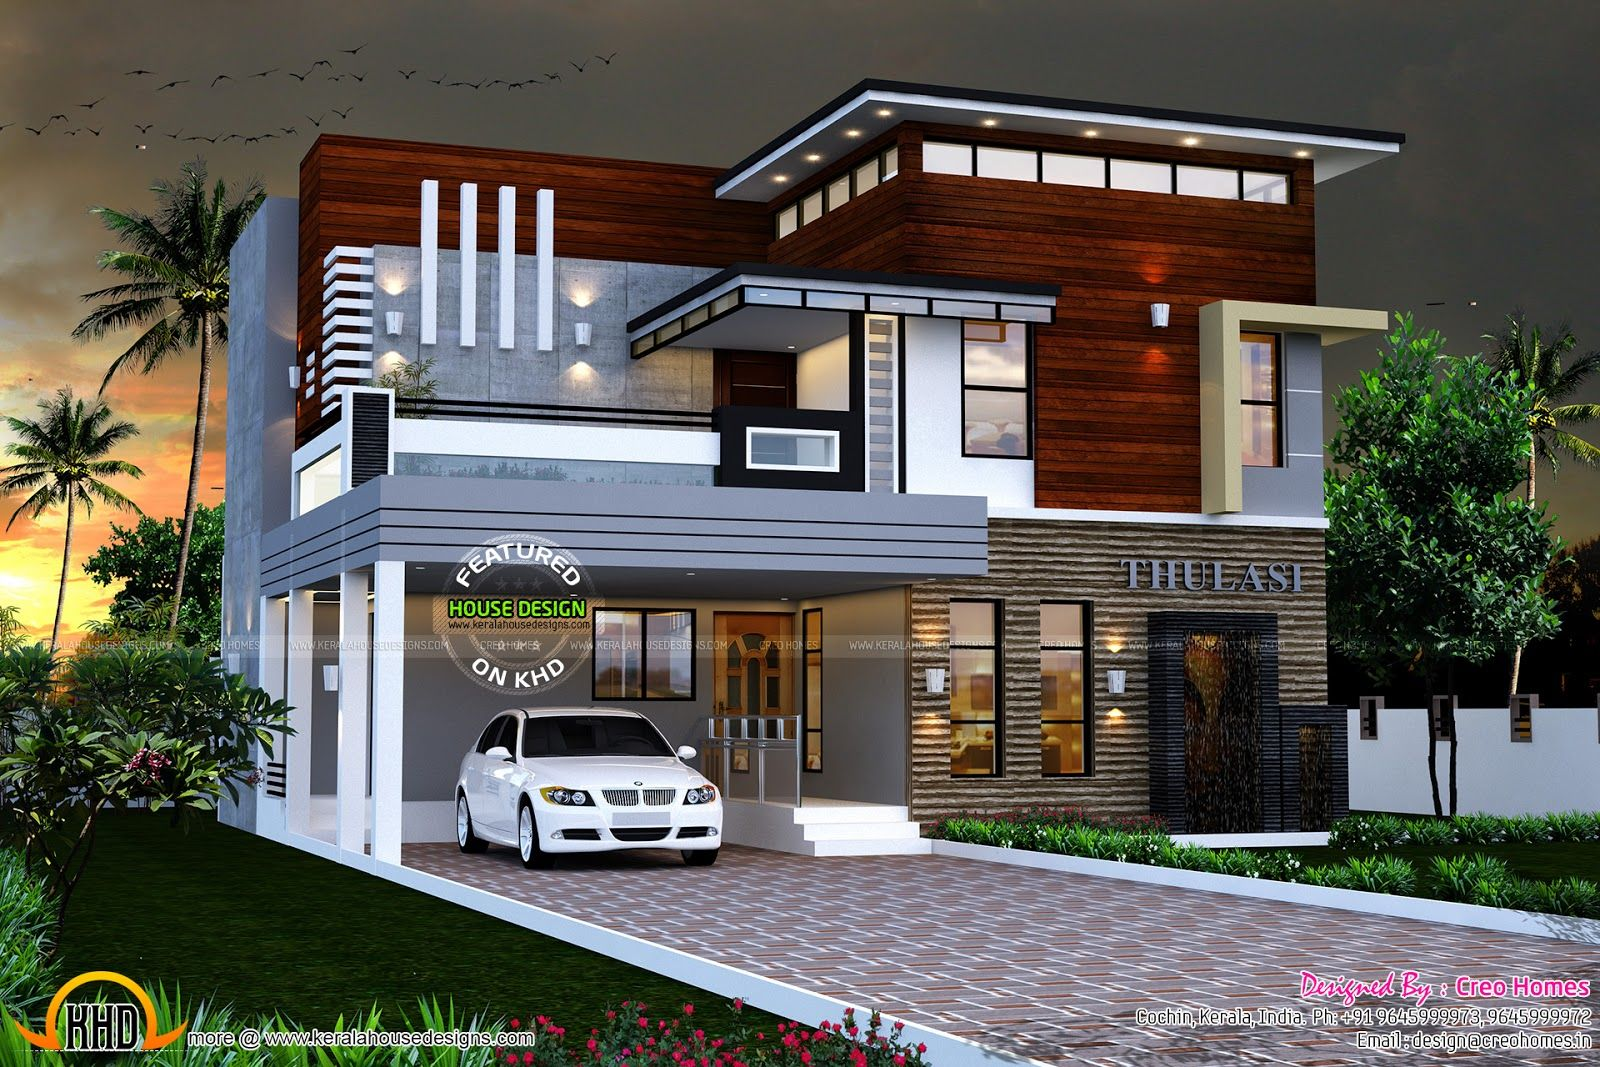 Eterior Design Modern Small House Architecture Building Plan Home